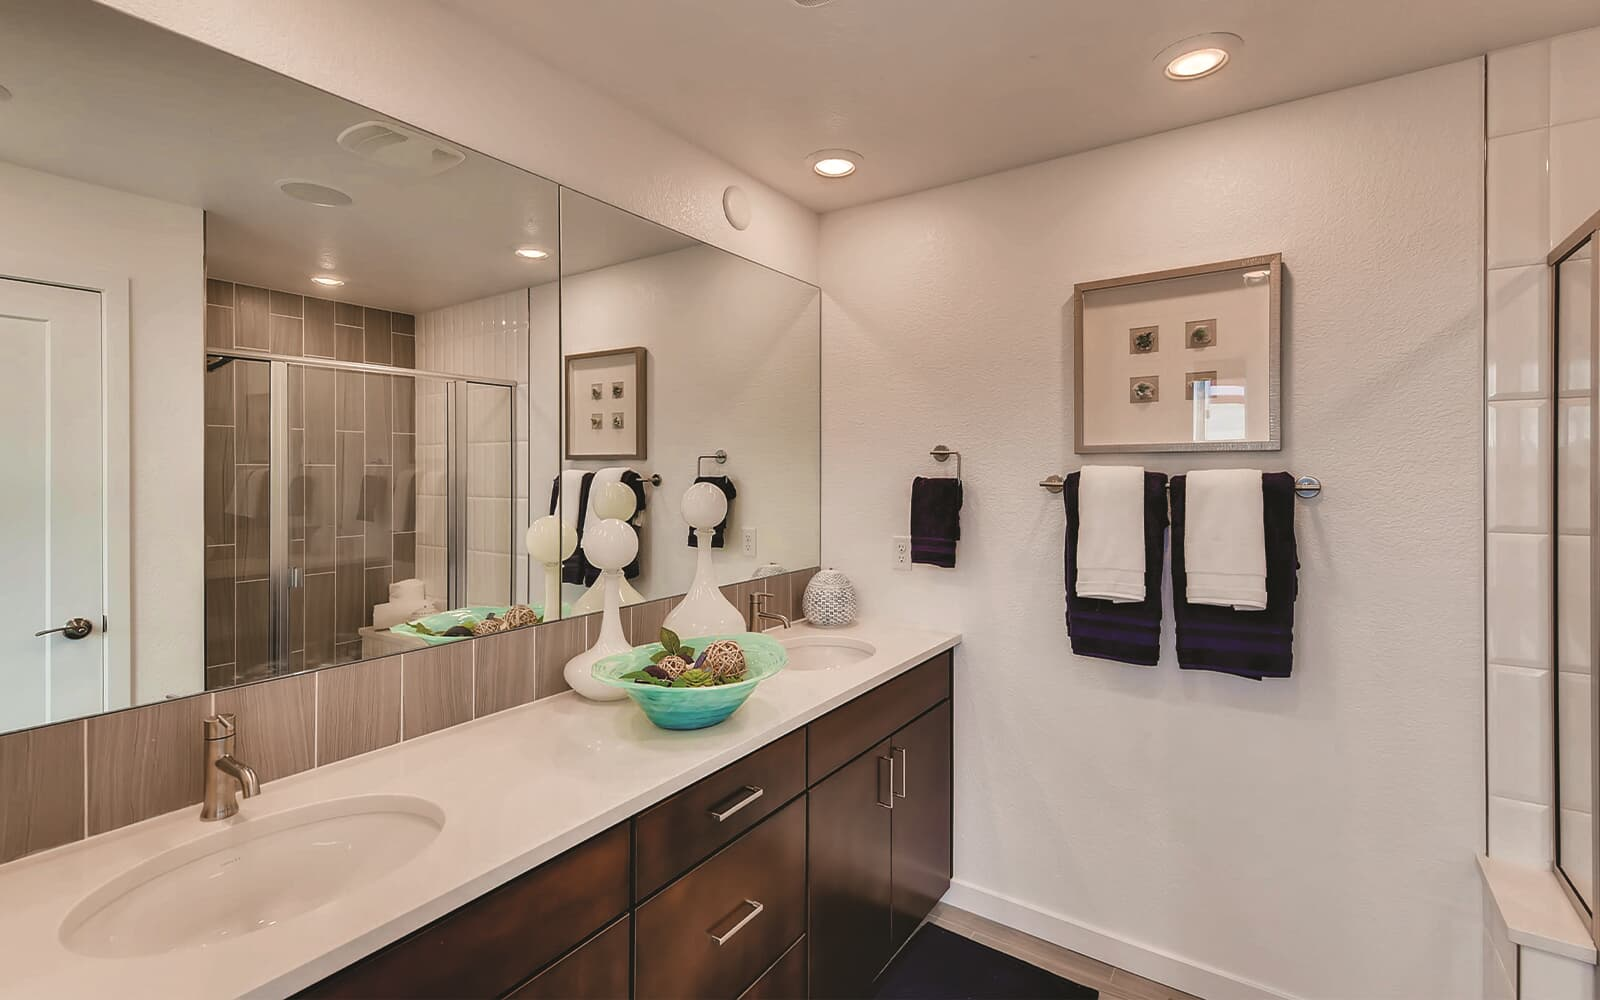 Cadence-Three-Third-Floor-Master-Bathroom-Midtown-Denver-Colorado